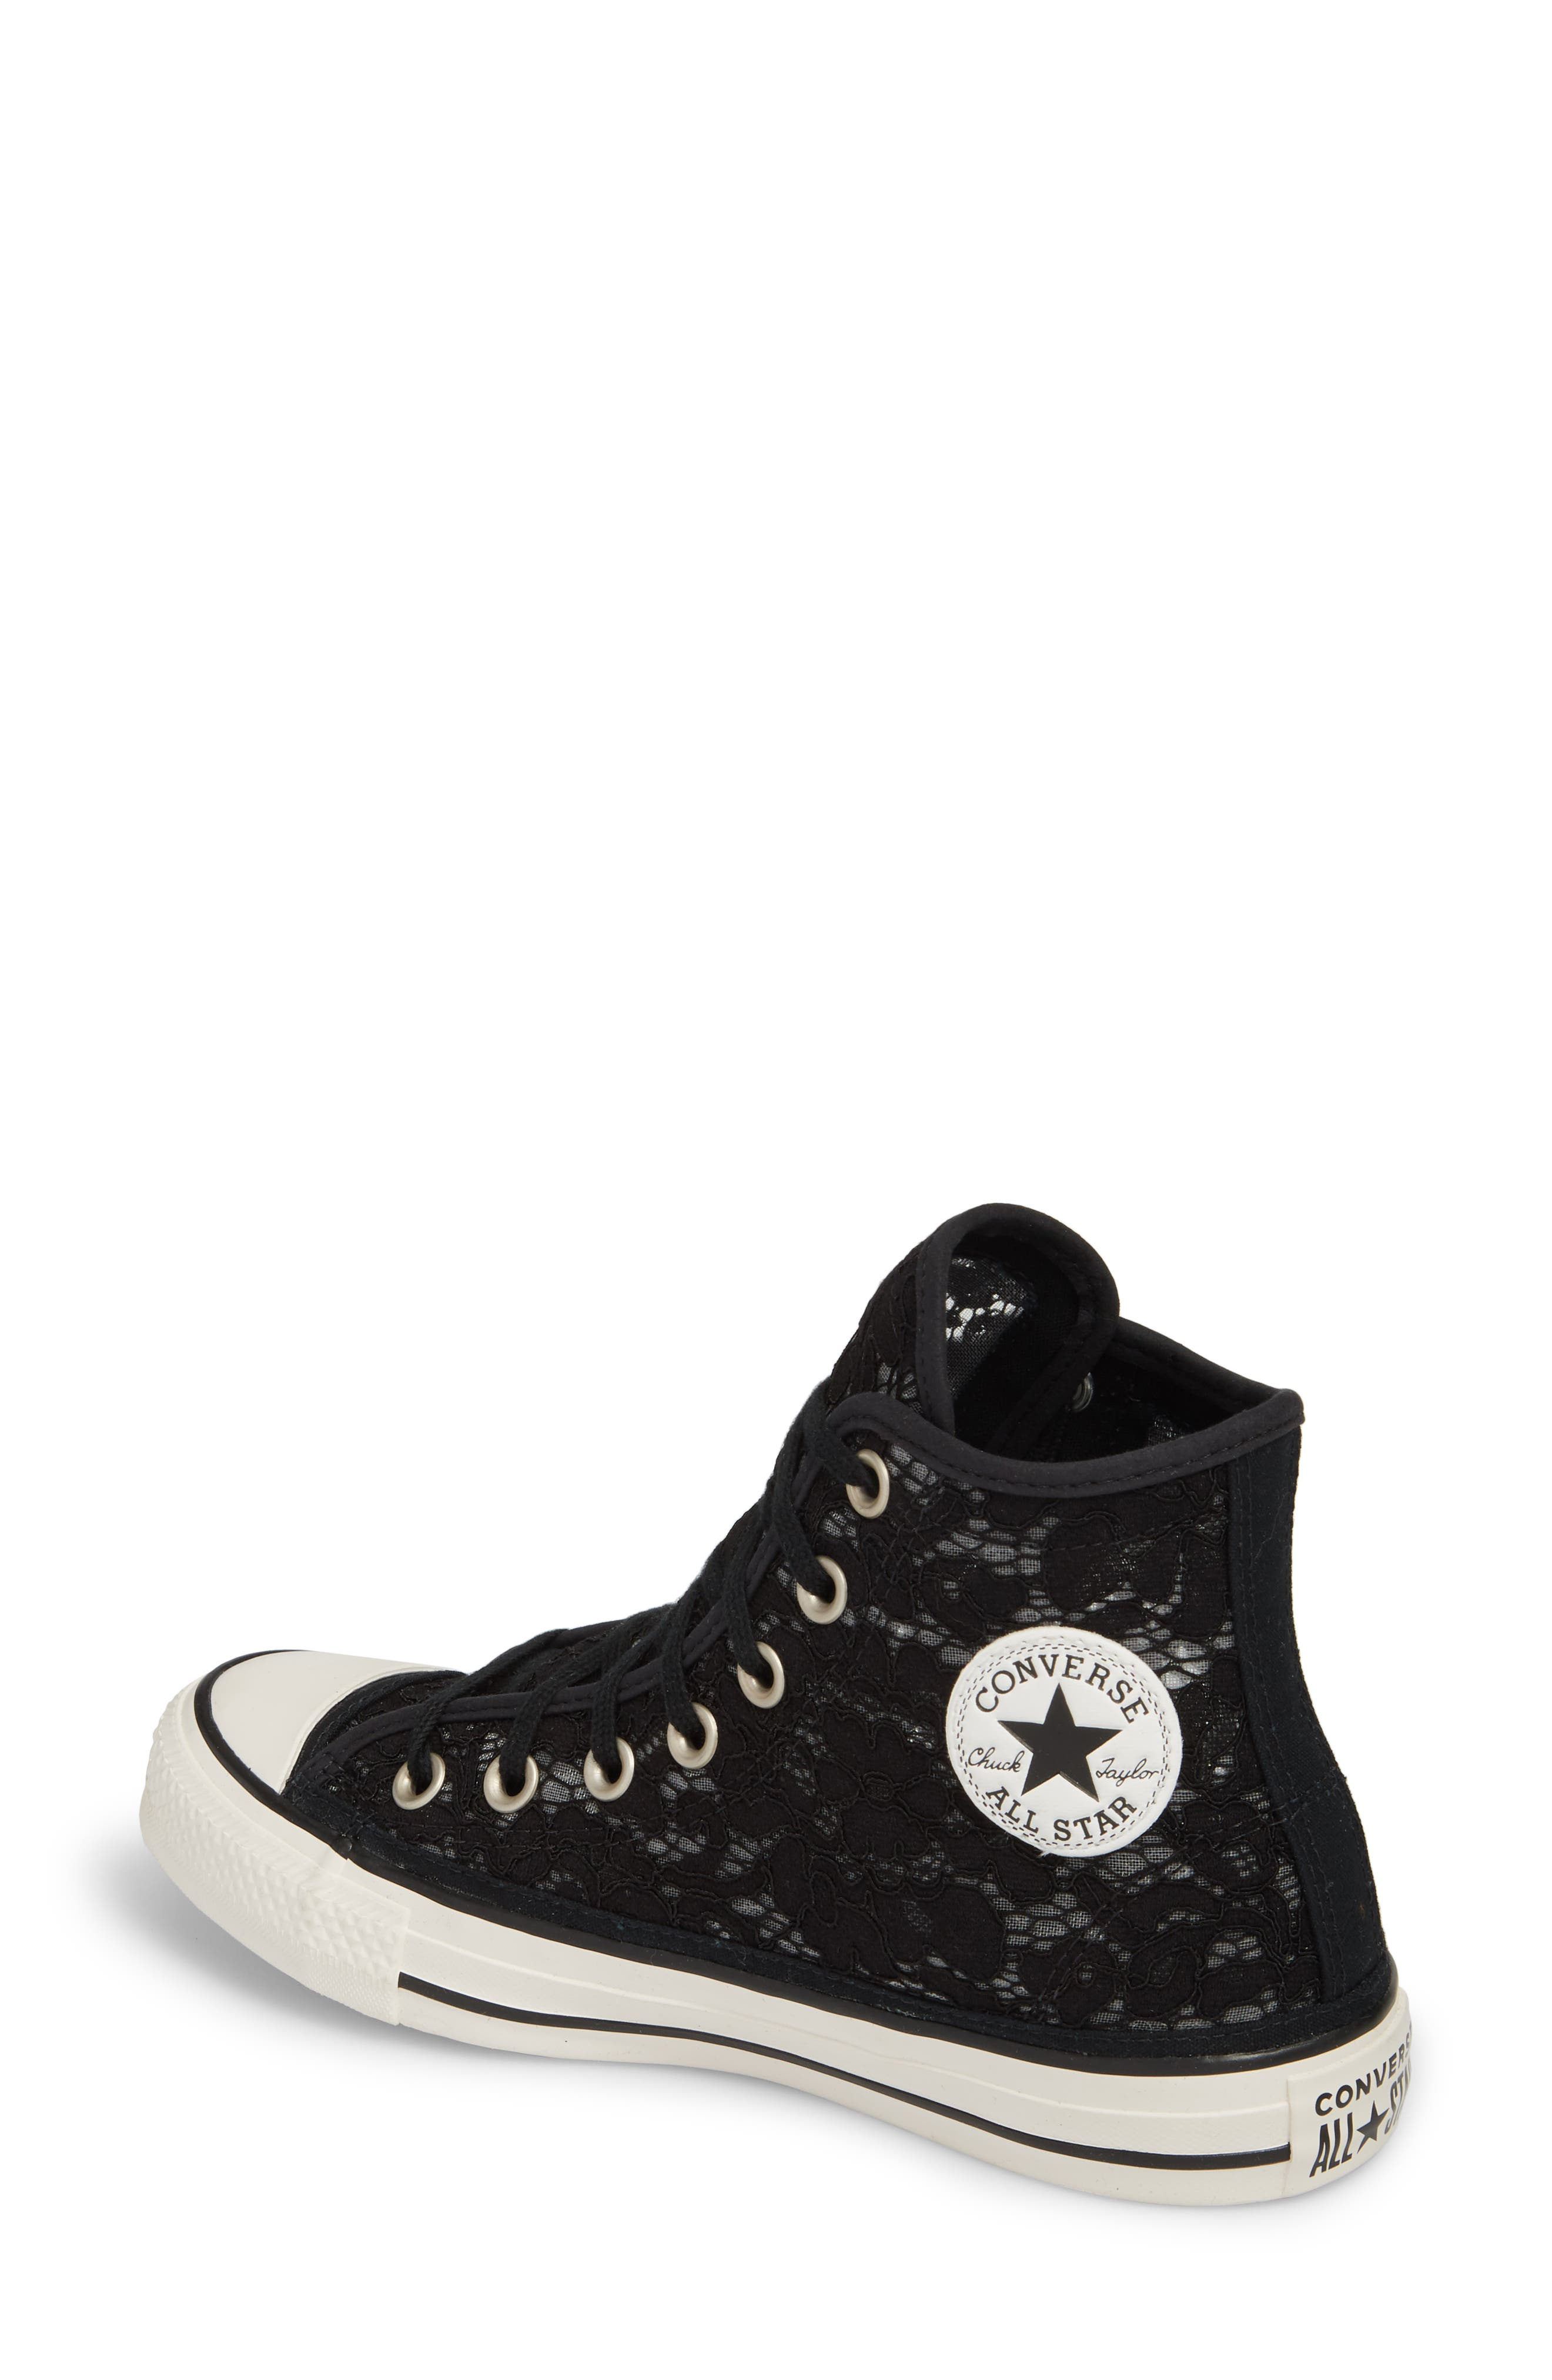 Chuck Taylor<sup>®</sup> All Star Lace High-Top Sneaker,                             Alternate thumbnail 2, color,                             Black/ White